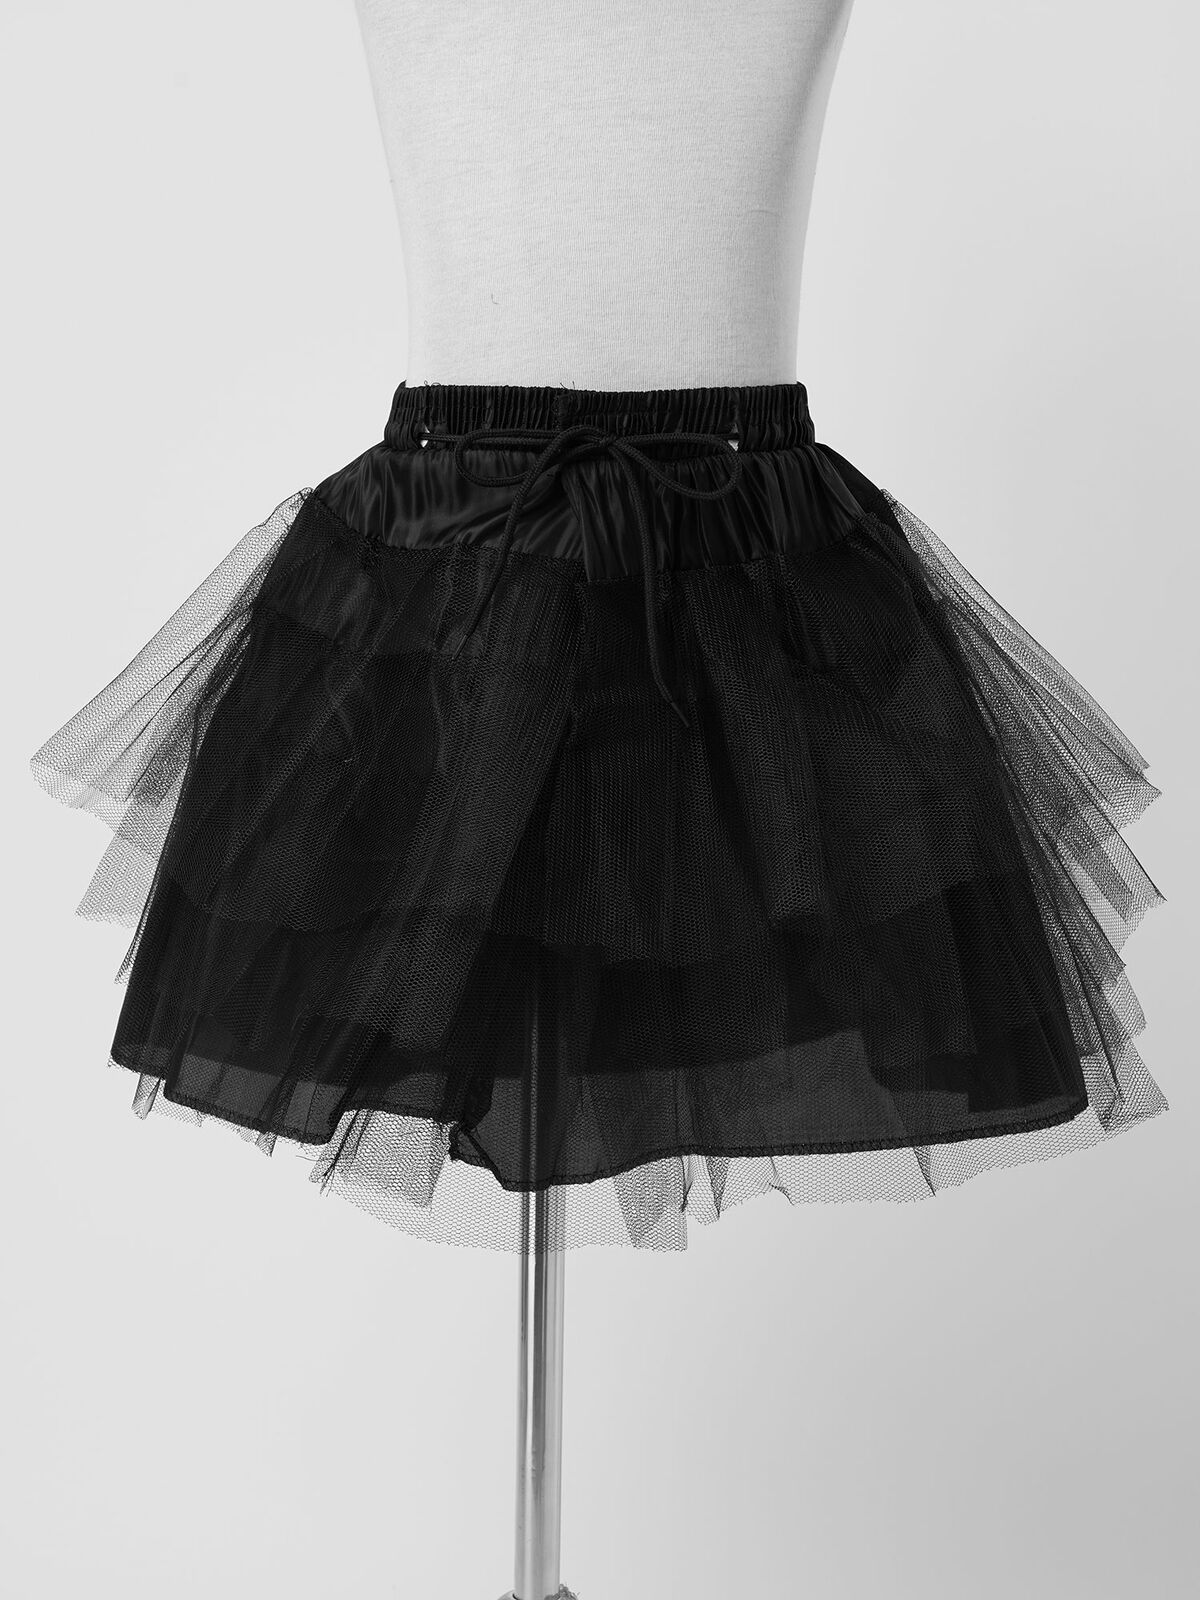 Layered Skirt Tutu Underskirt A-line Pleated Petticoat for Wedding Party Dress